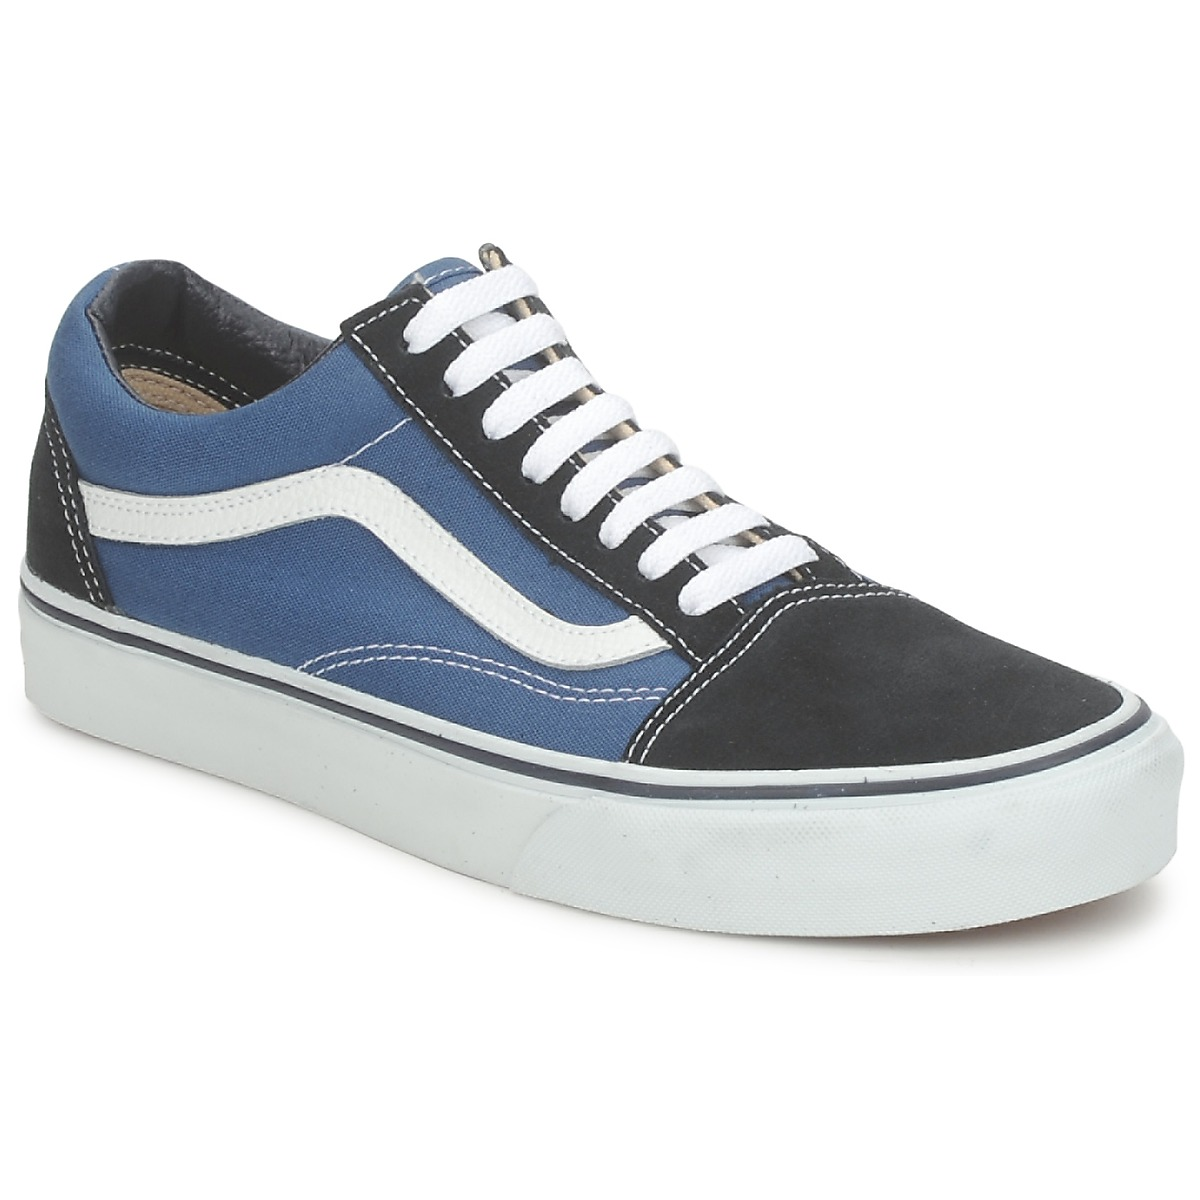 b69c209c067e Vans OLD SKOOL Blue - Free delivery with Spartoo UK ! - Shoes Low ...